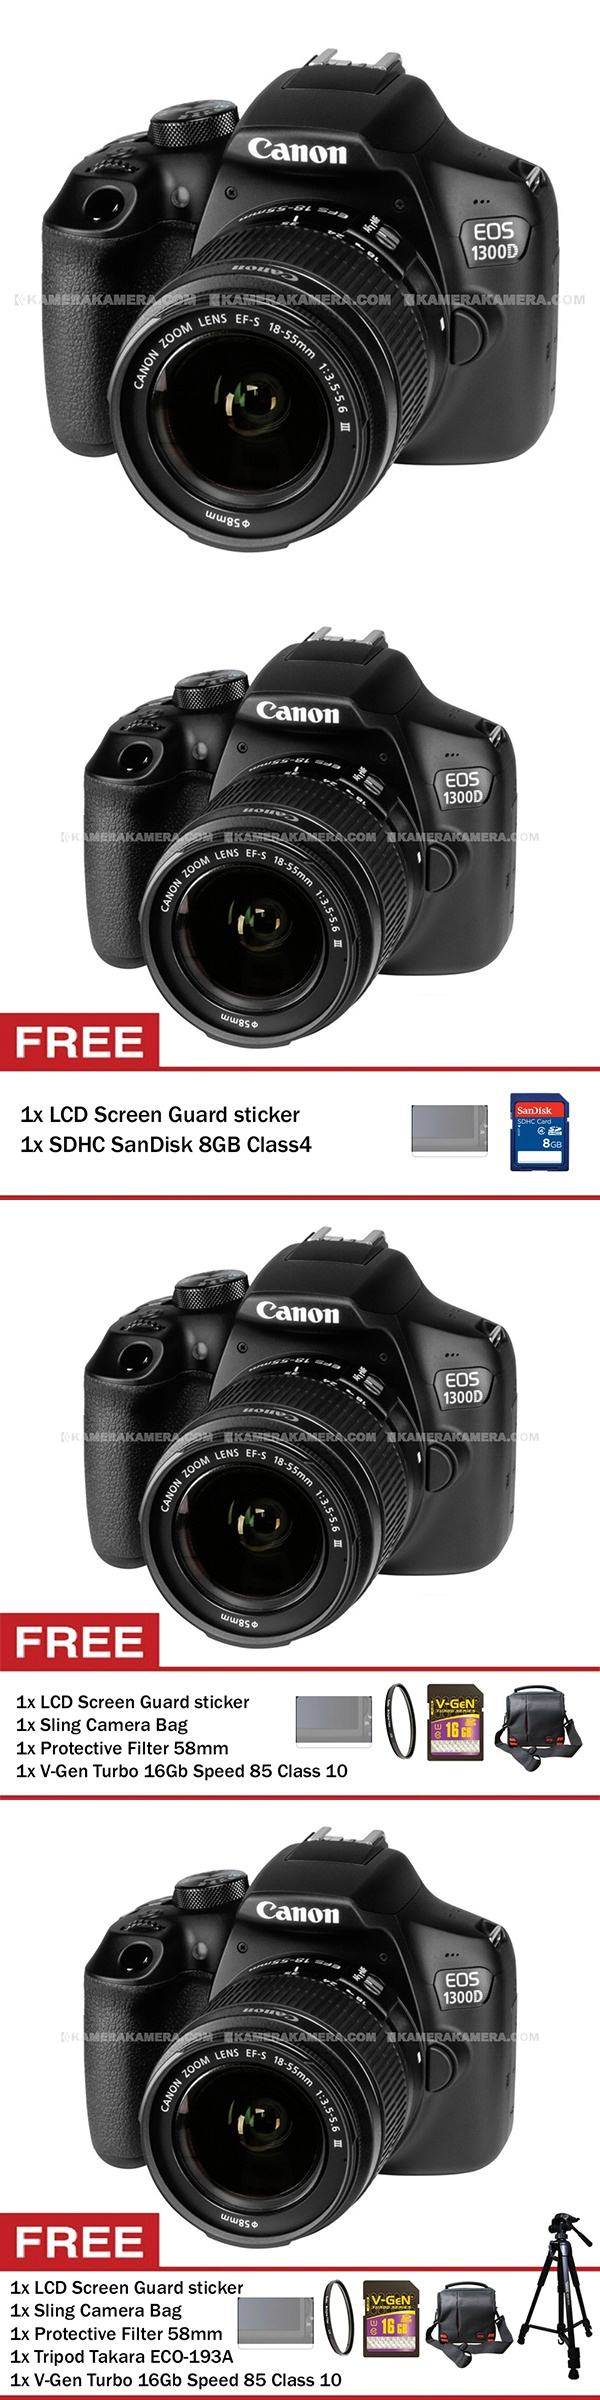 Canon EOS 1300D (Wi-Fi) 18-55mm III + Screen Guard + SDHC SanDisk 8GB Class4 - Canon EOS 1300D 18MP (Wi-Fi) with Lens EF-S 18-55mm III